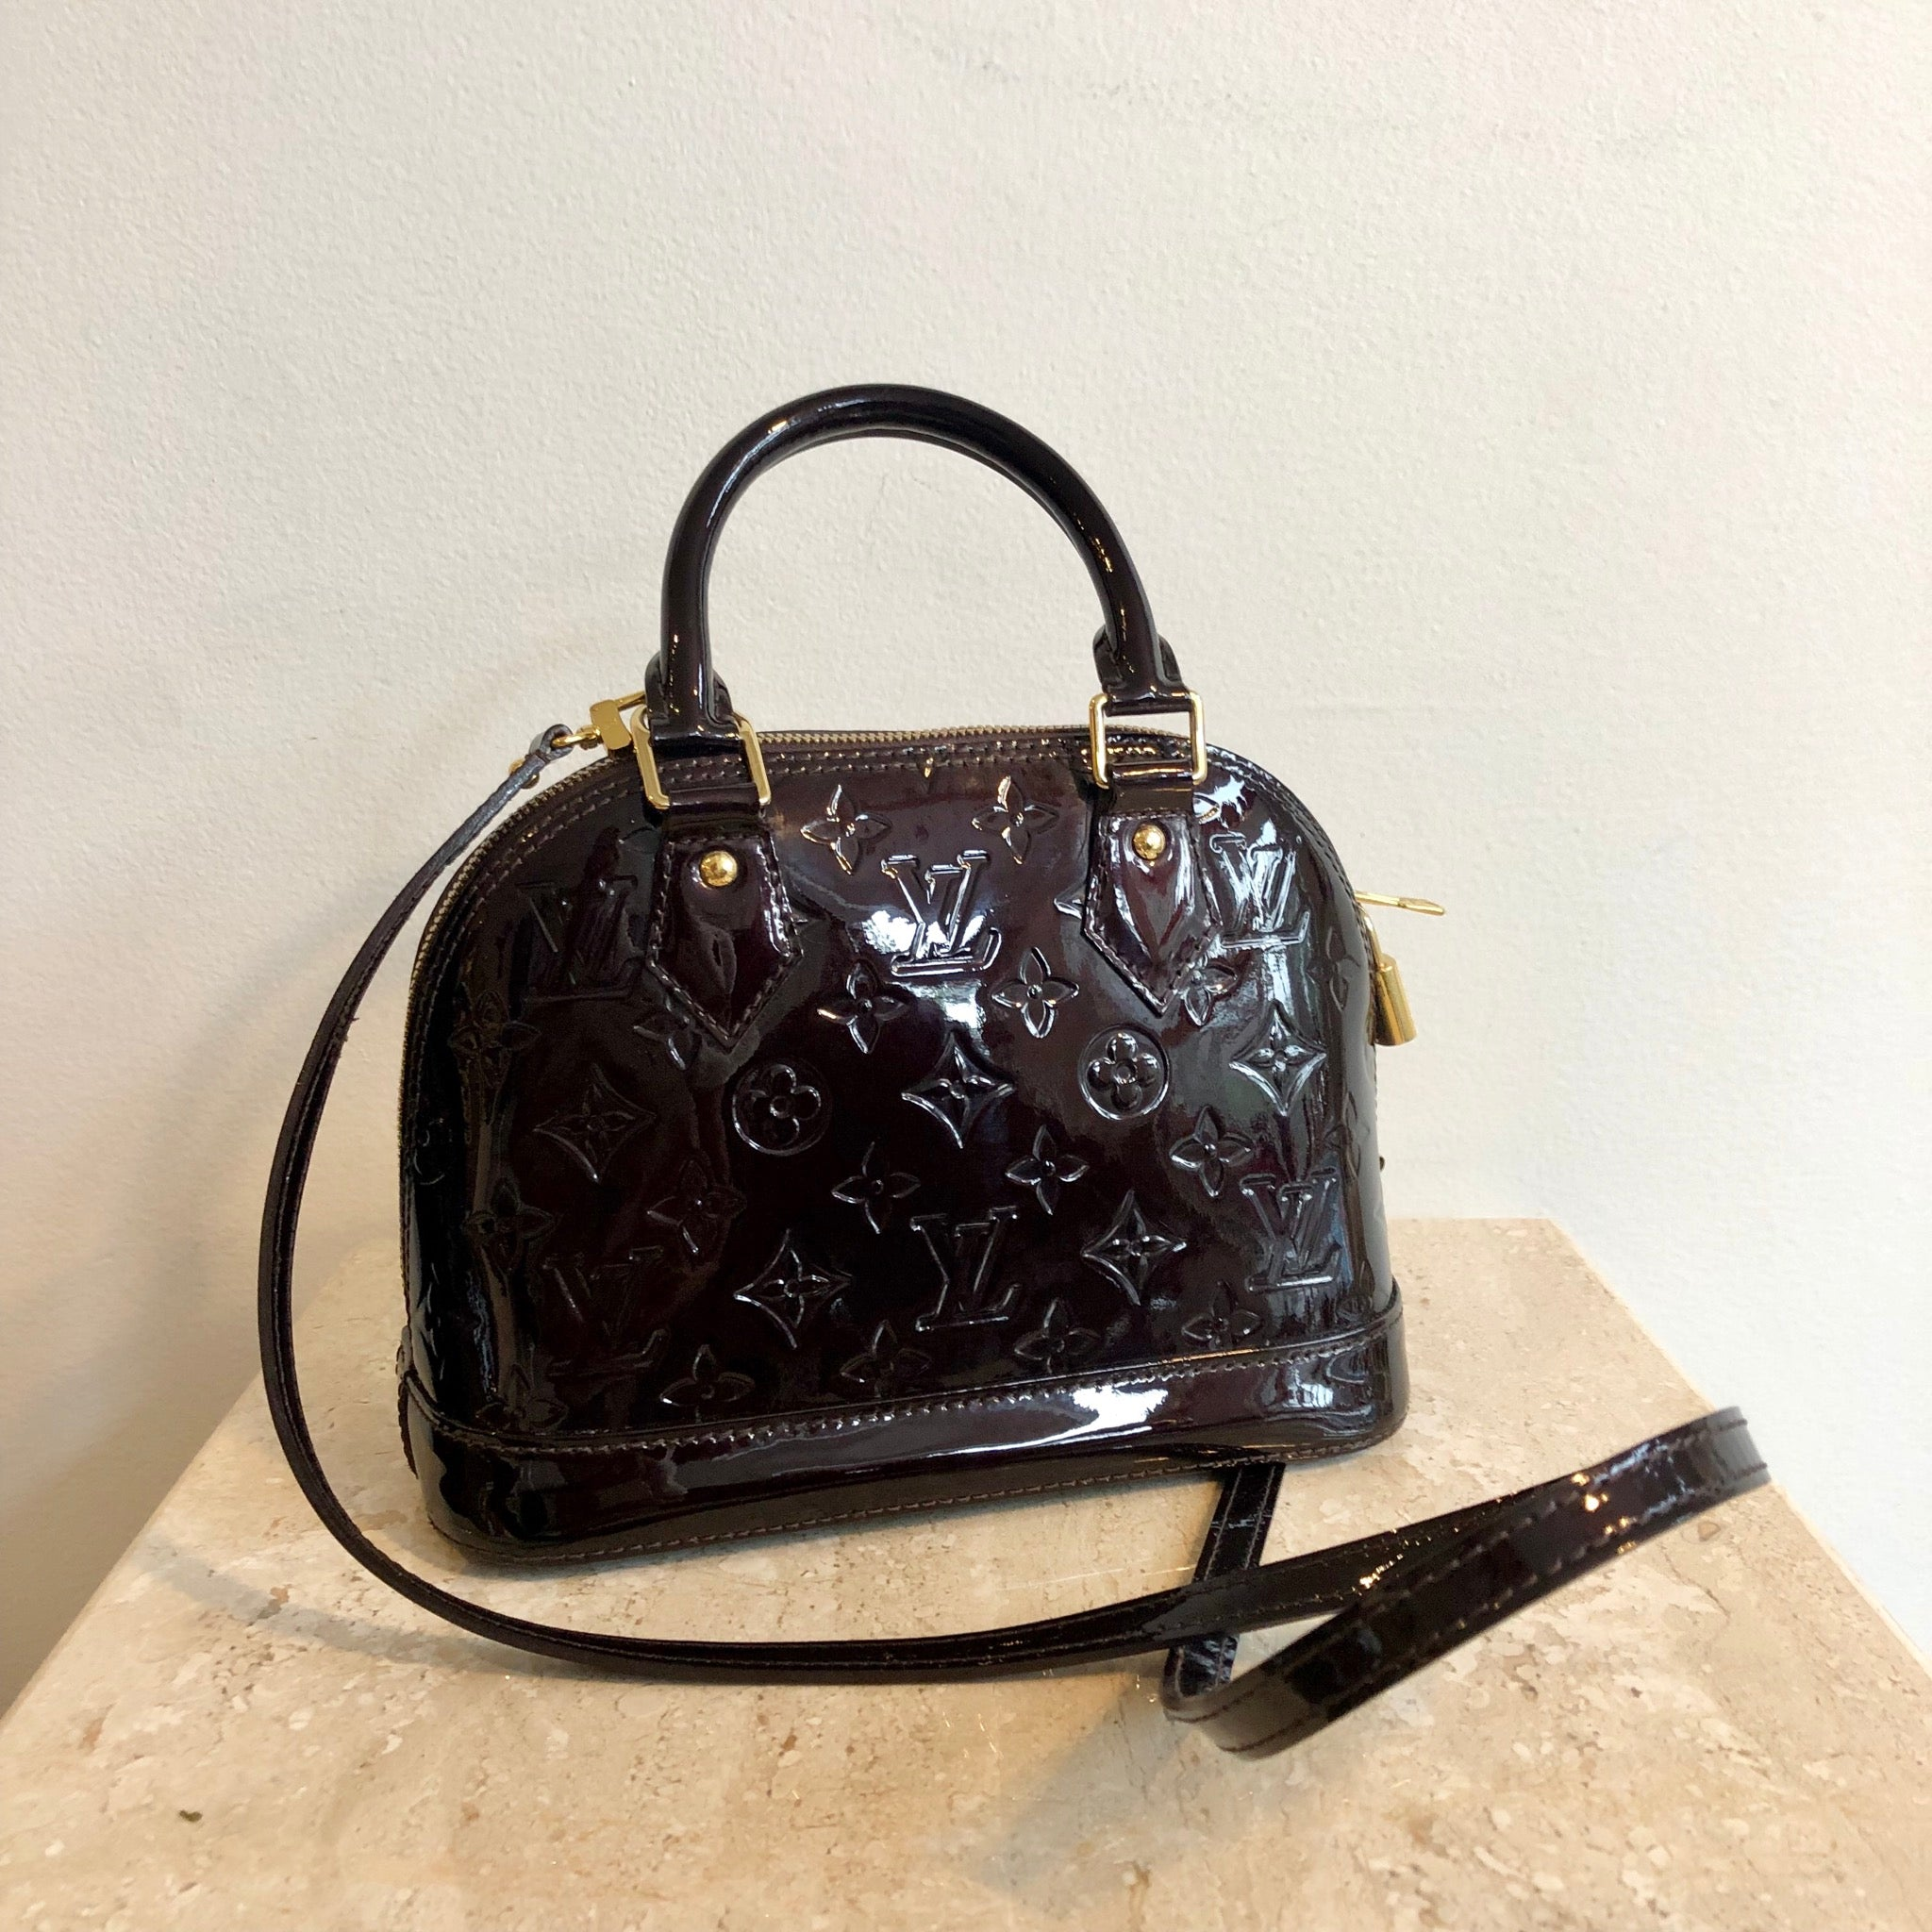 Authentic LOUIS VUITTON Alma BB Vernis in Amarante